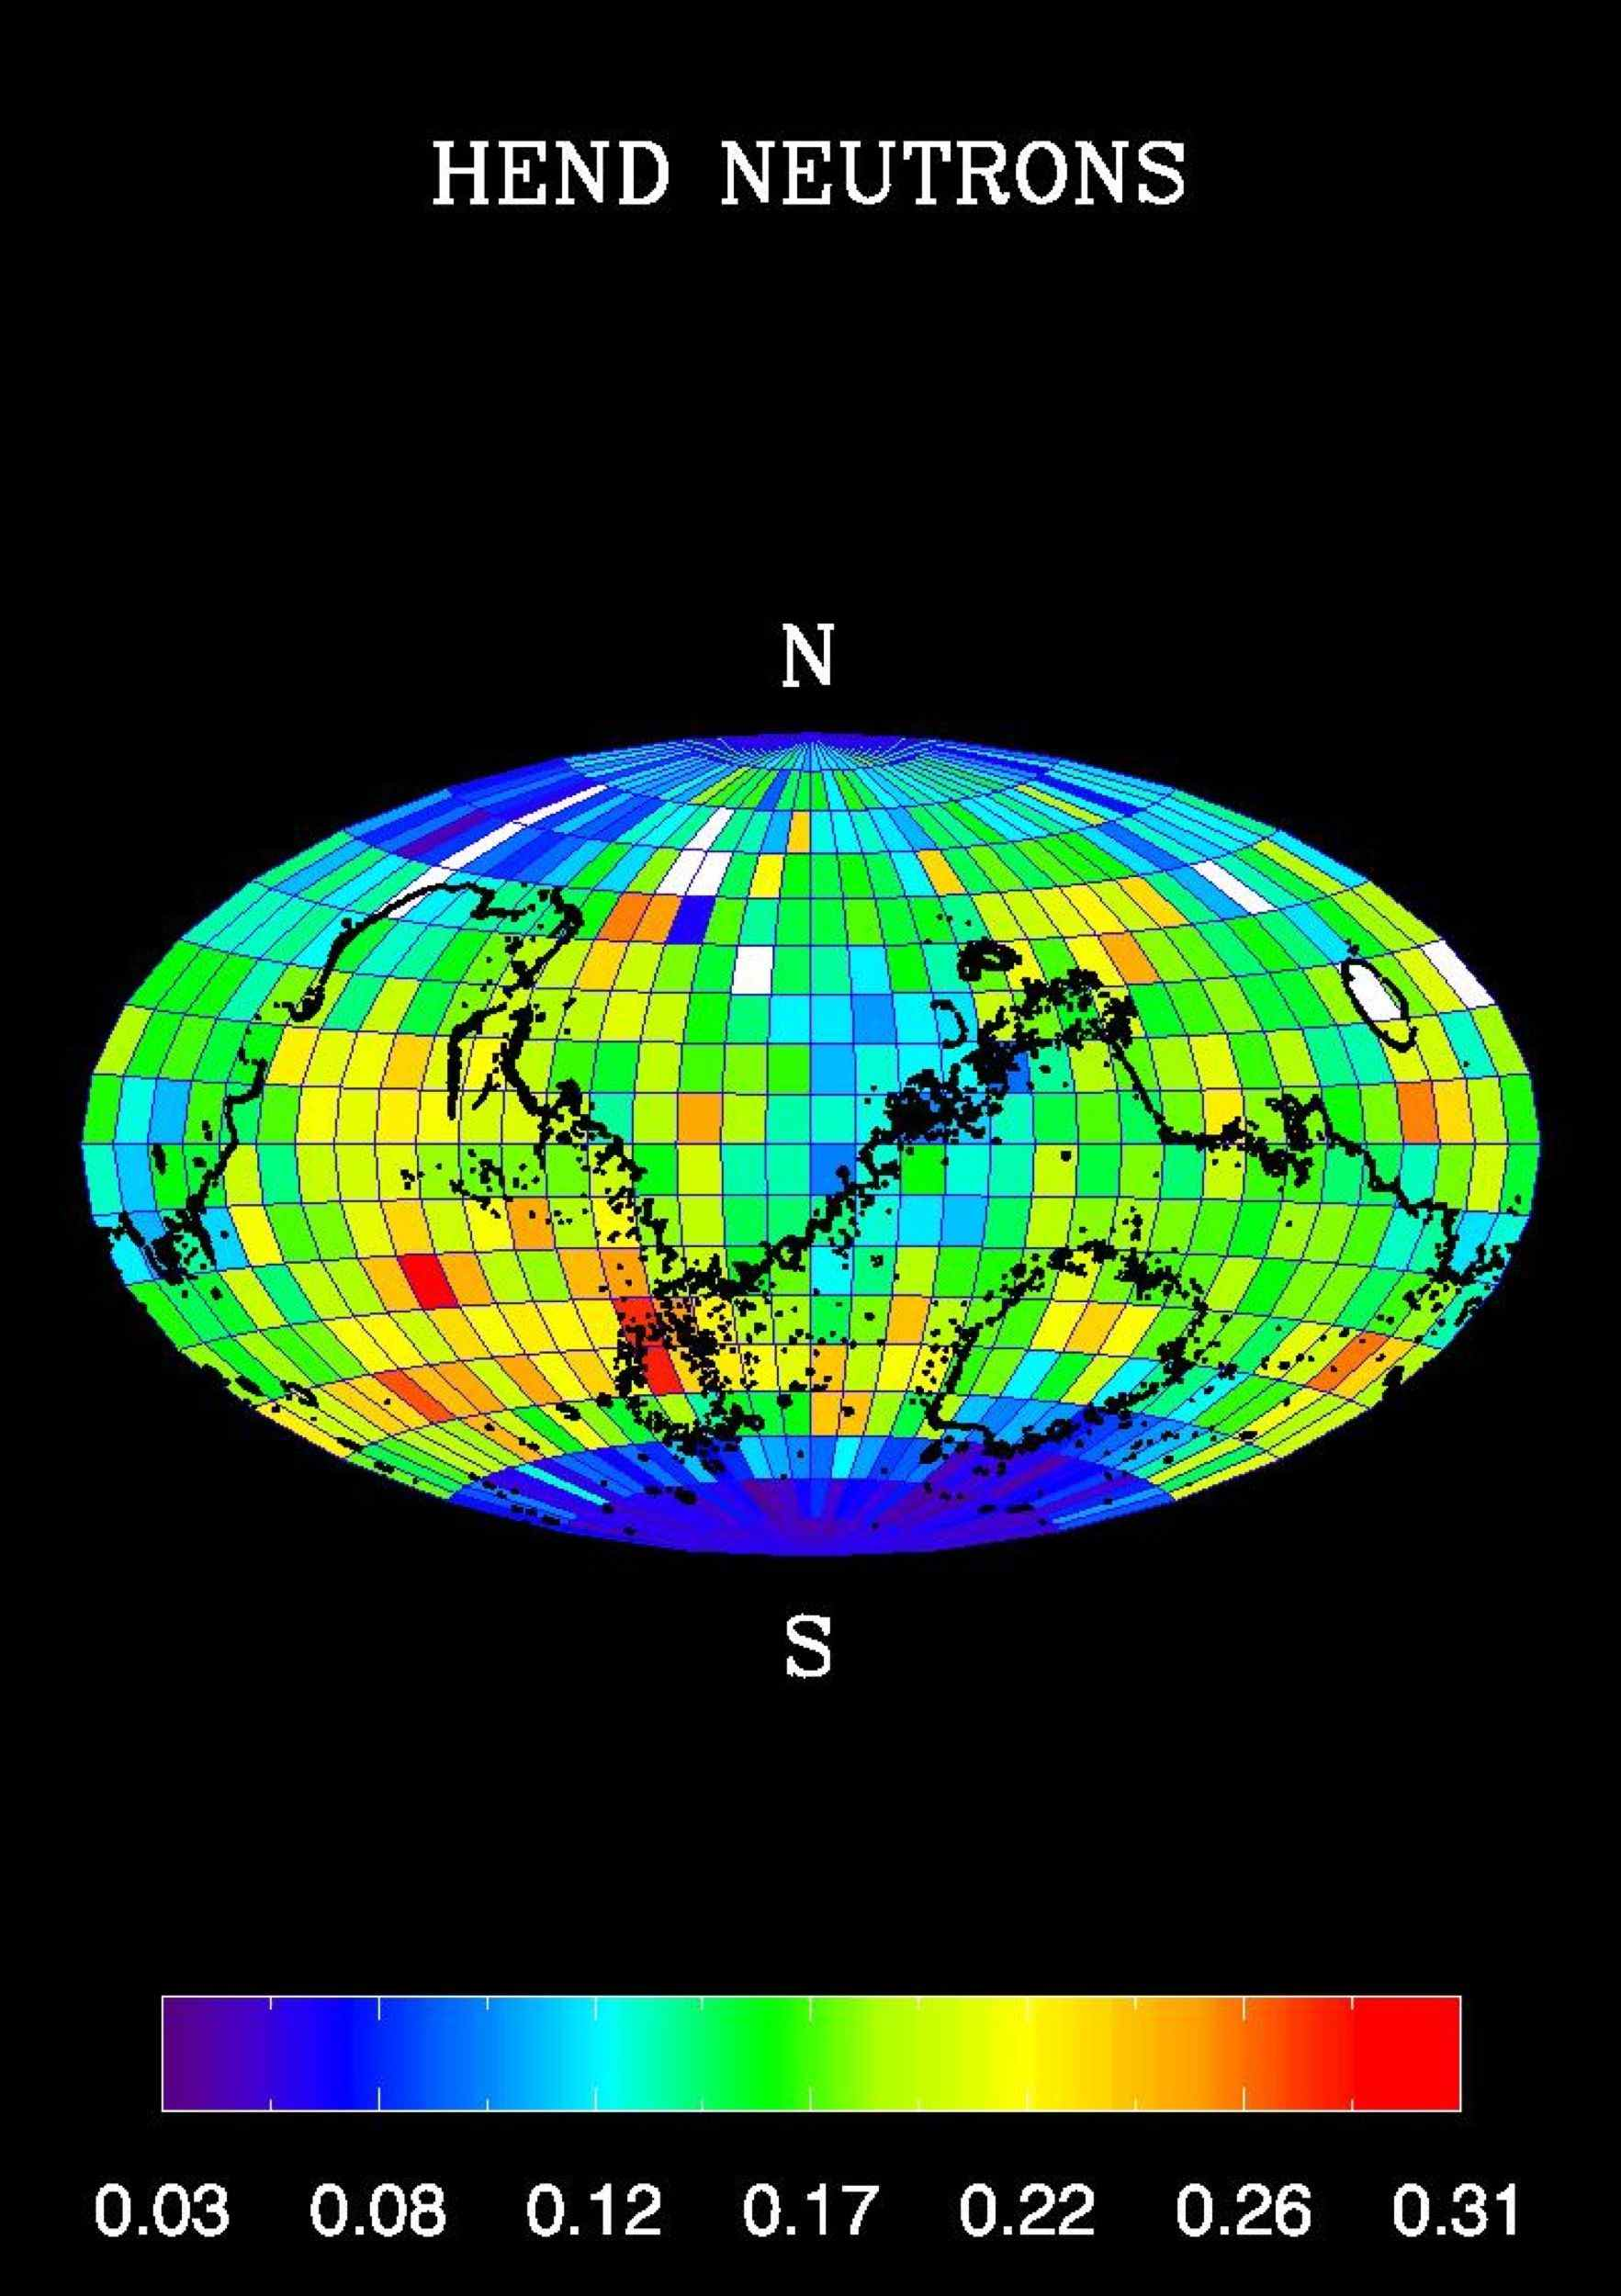 A high content of hydrogen in Mars' southern polar region is apparent in this global map of high-energy neutrons measured by NASA's Mars Odyssey spacecraft.